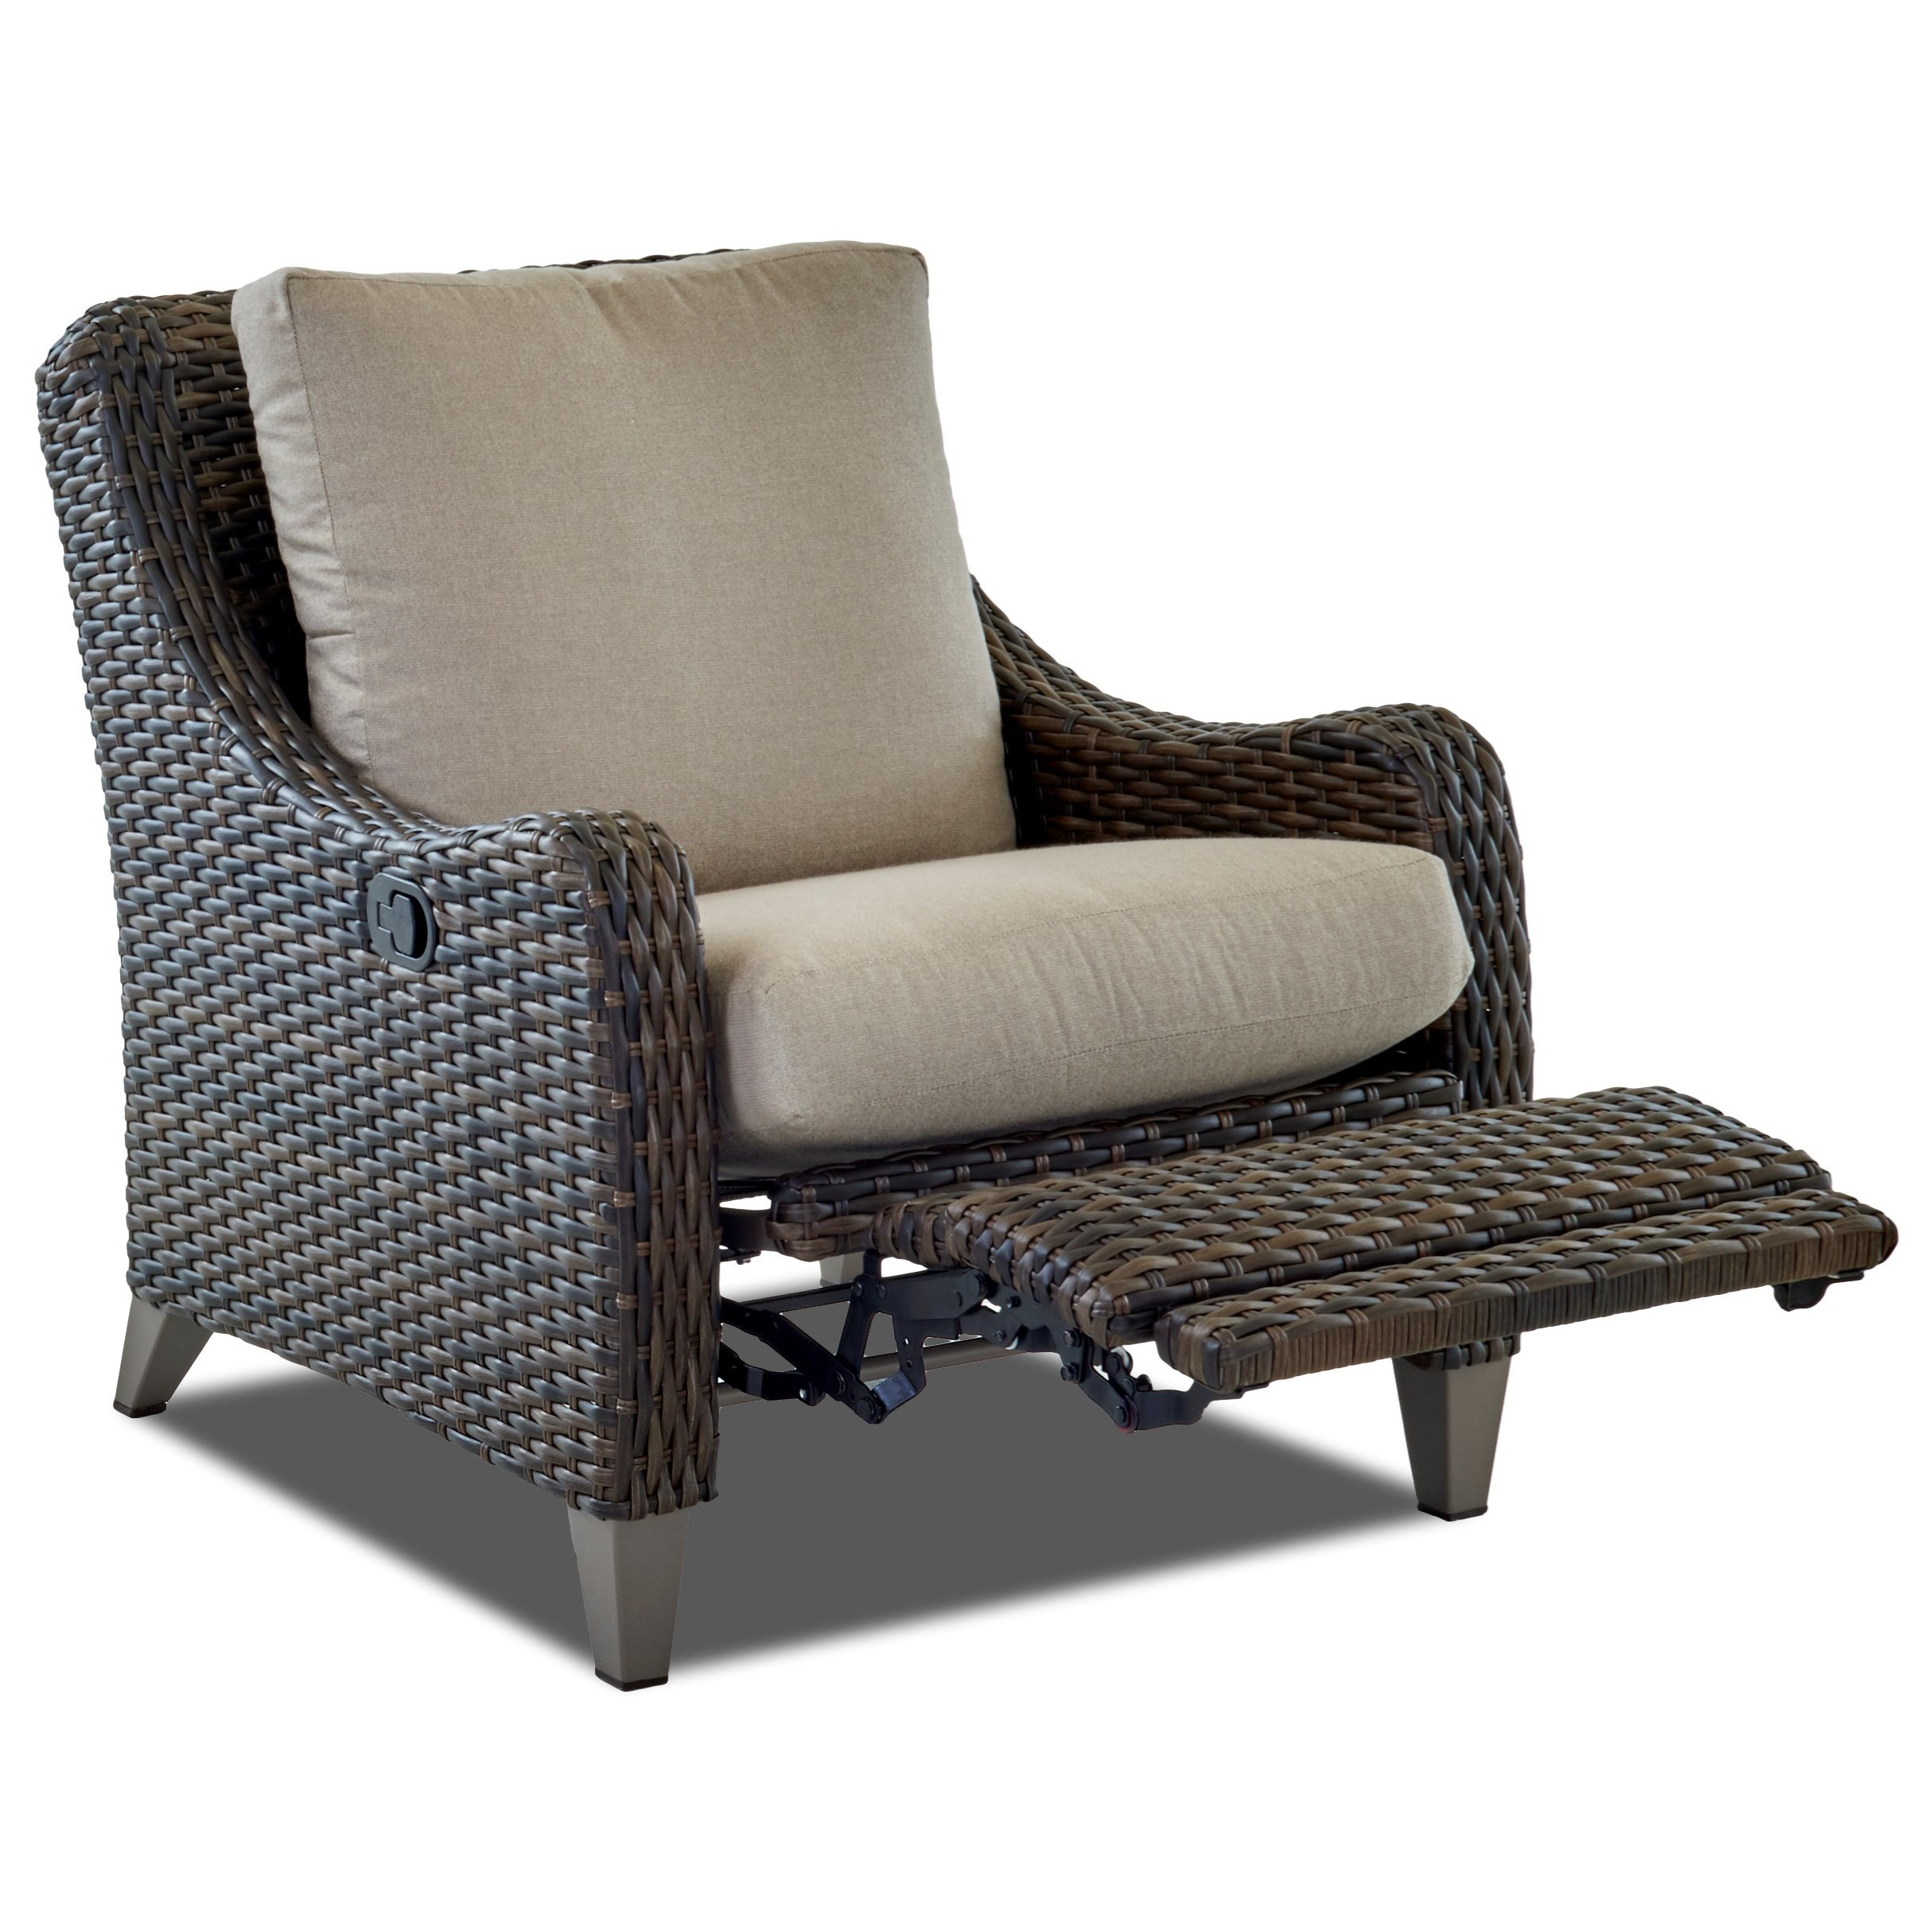 Picture of: Klaussner Outdoor Mesa W7502 Hlrc Outdoor High Leg Reclining Chair Hudson S Furniture Outdoor Chairs